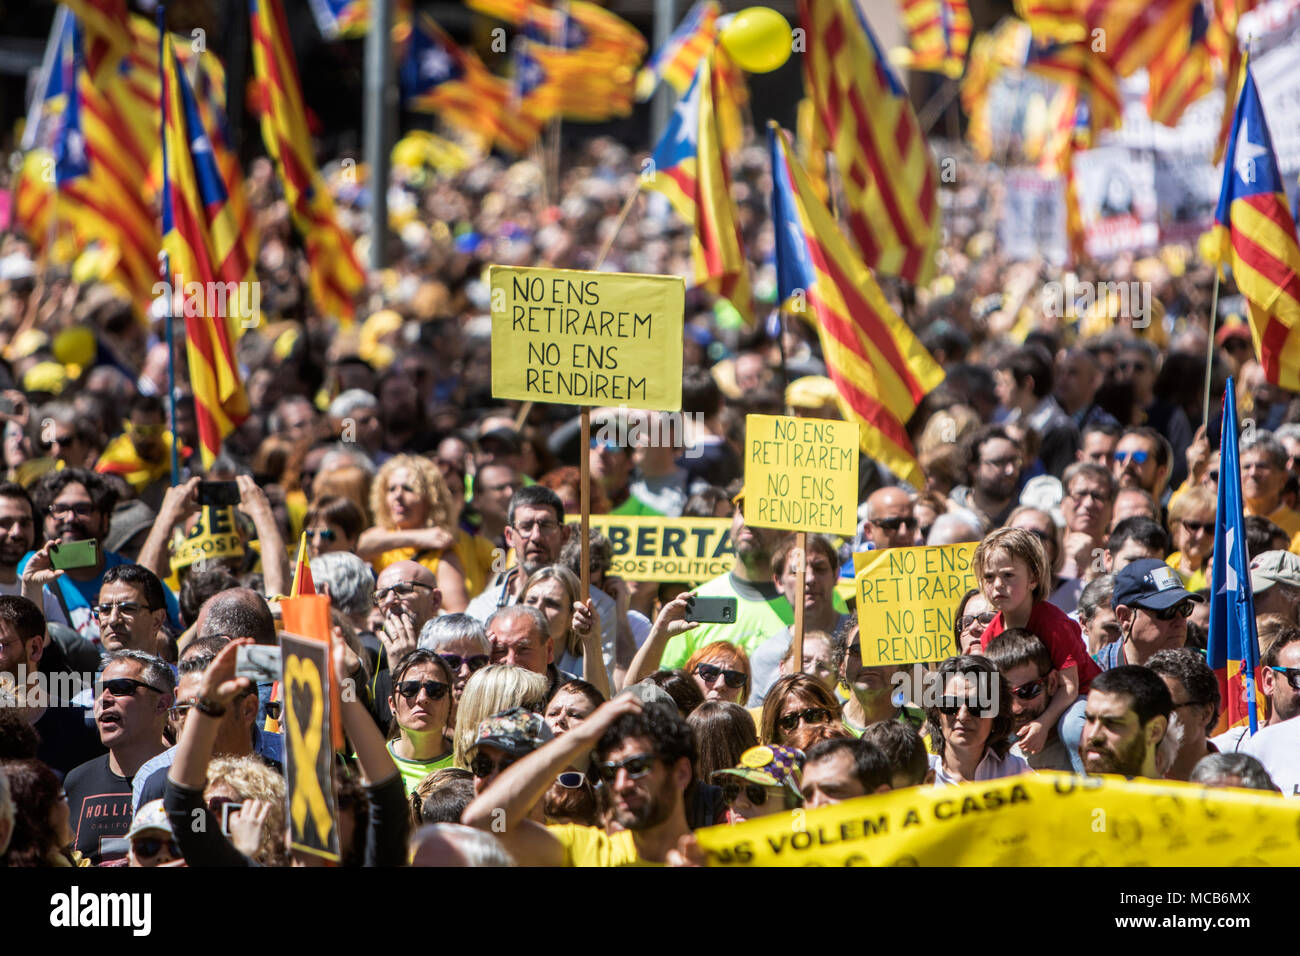 """Barcelona, Spain 15th April 2018  Protesters seen holding banner and waving the Catalan flag during the demonstration. A demonstration organized by social, cultural organizations, unions and political parties, under the motto """"We want you at home"""". Credit: SOPA Images Limited/Alamy Live News Stock Photo"""